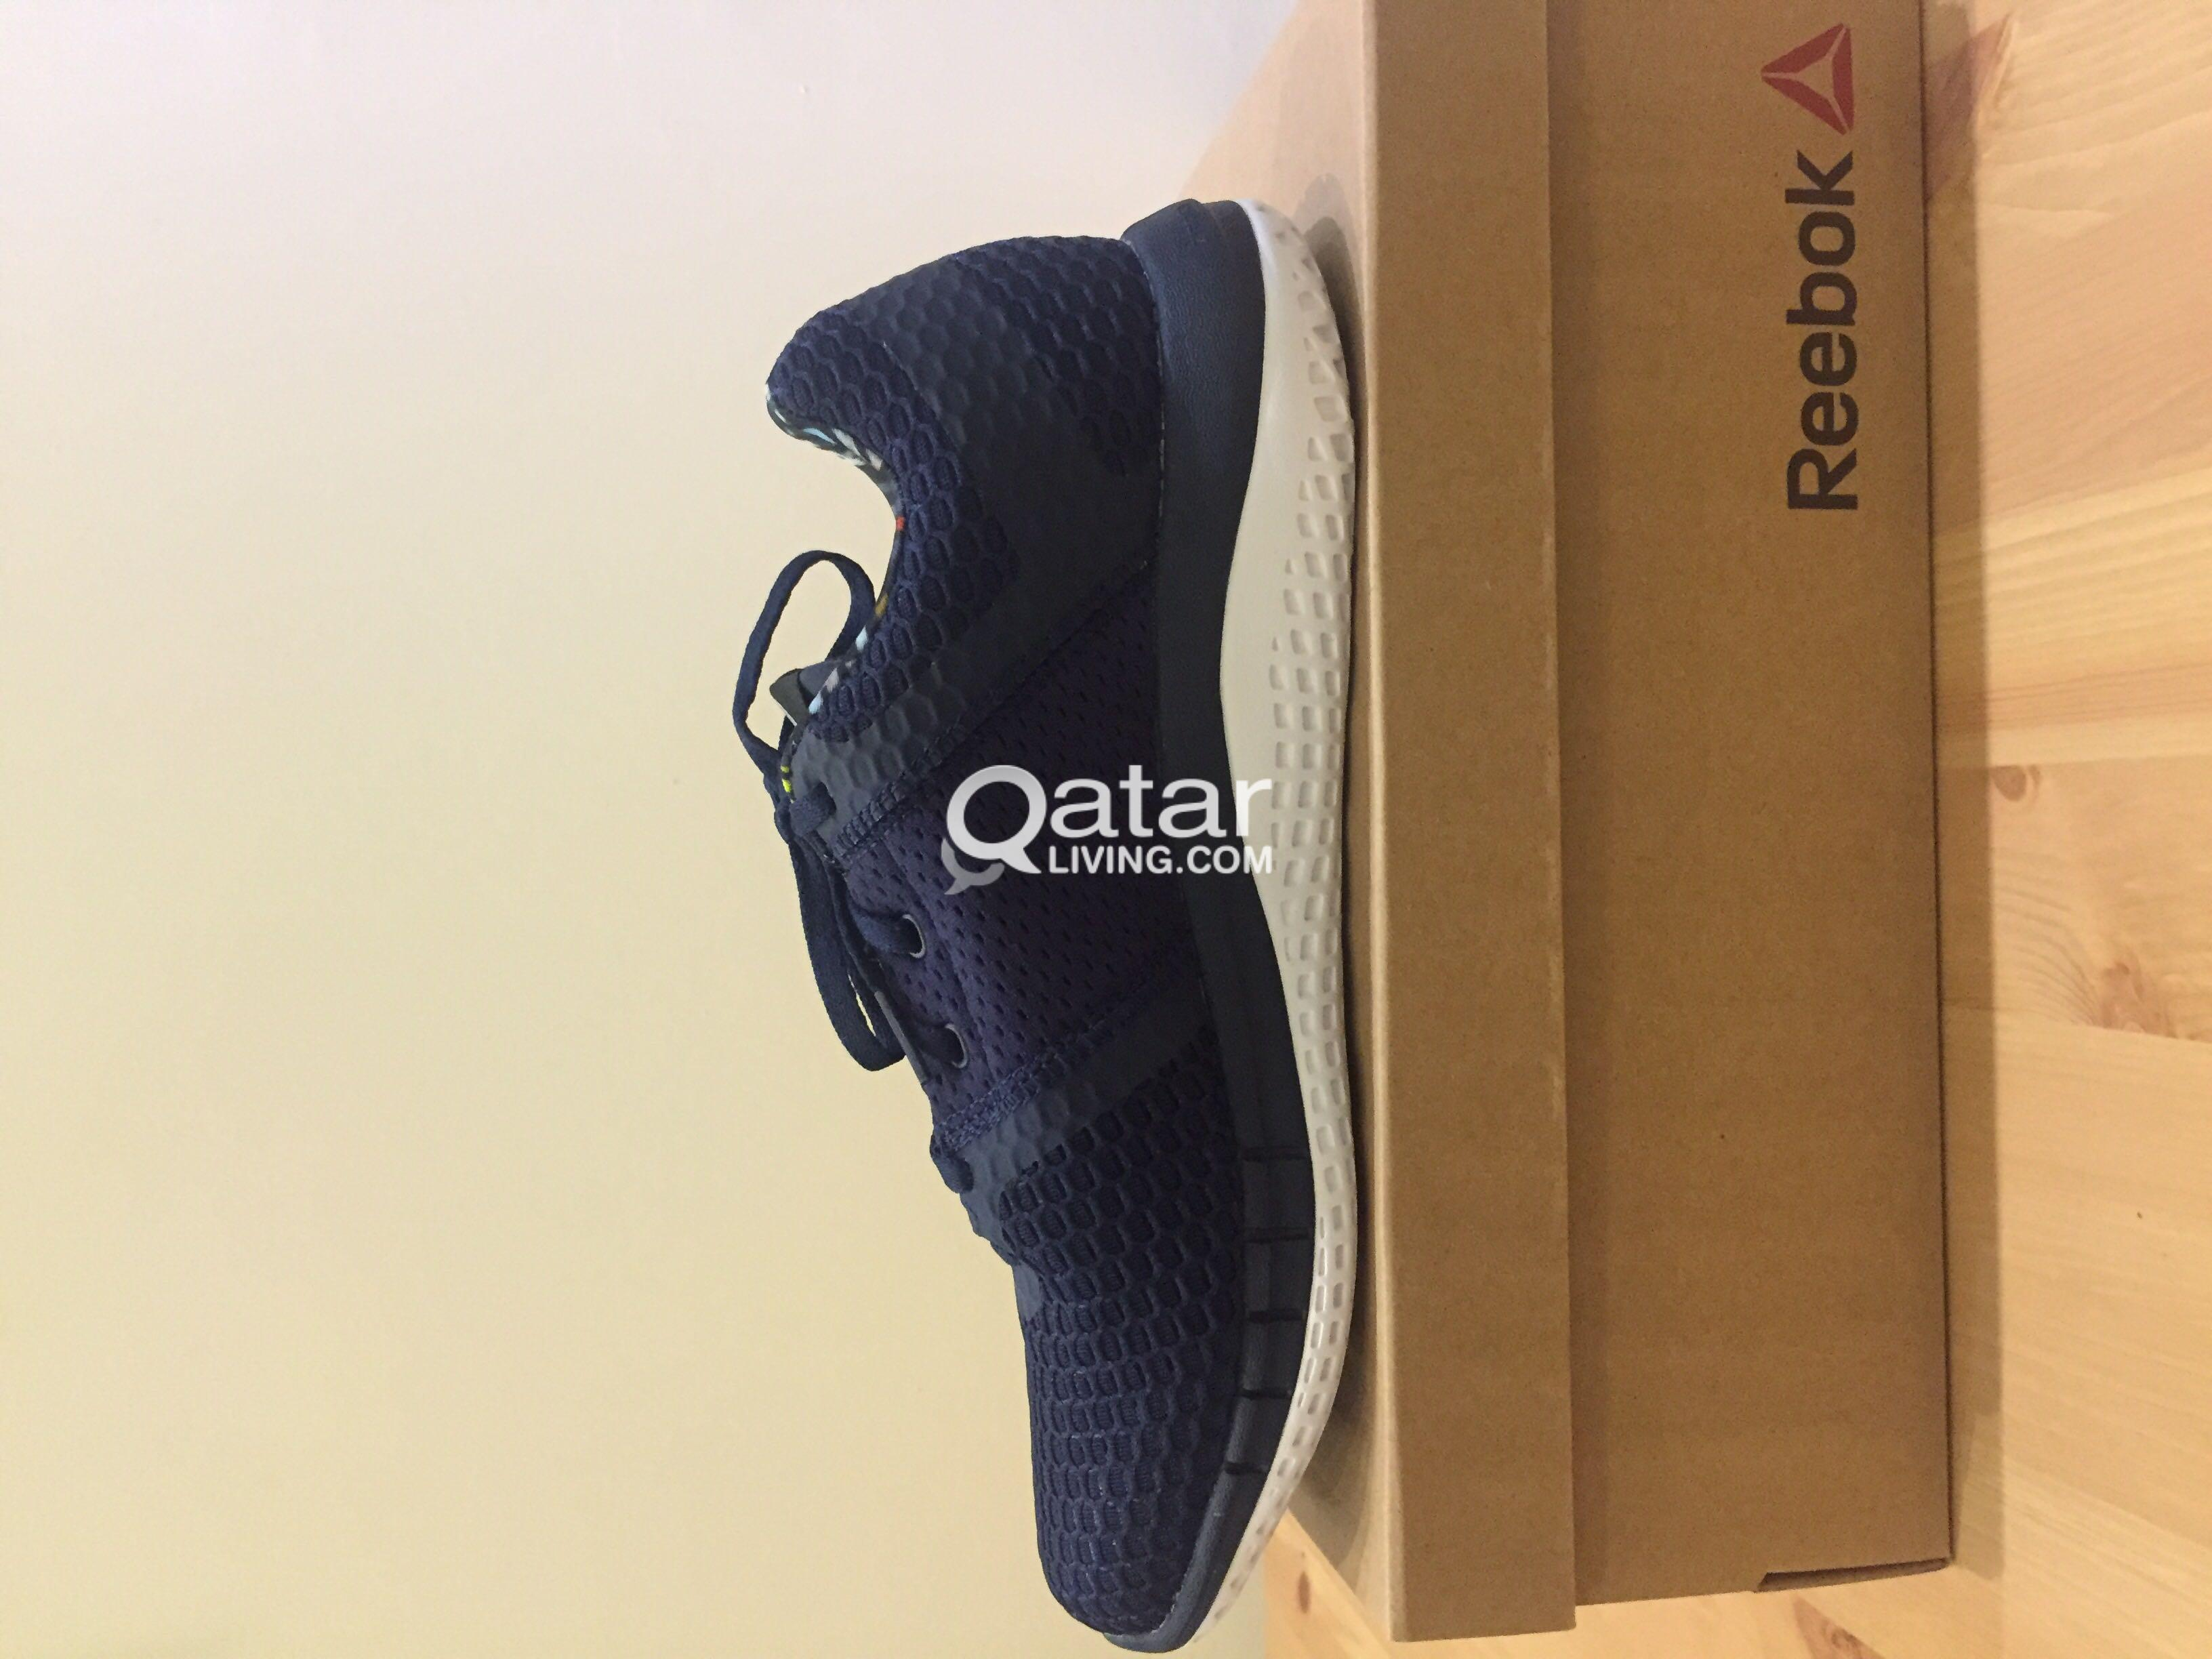 reebok shoes qatar